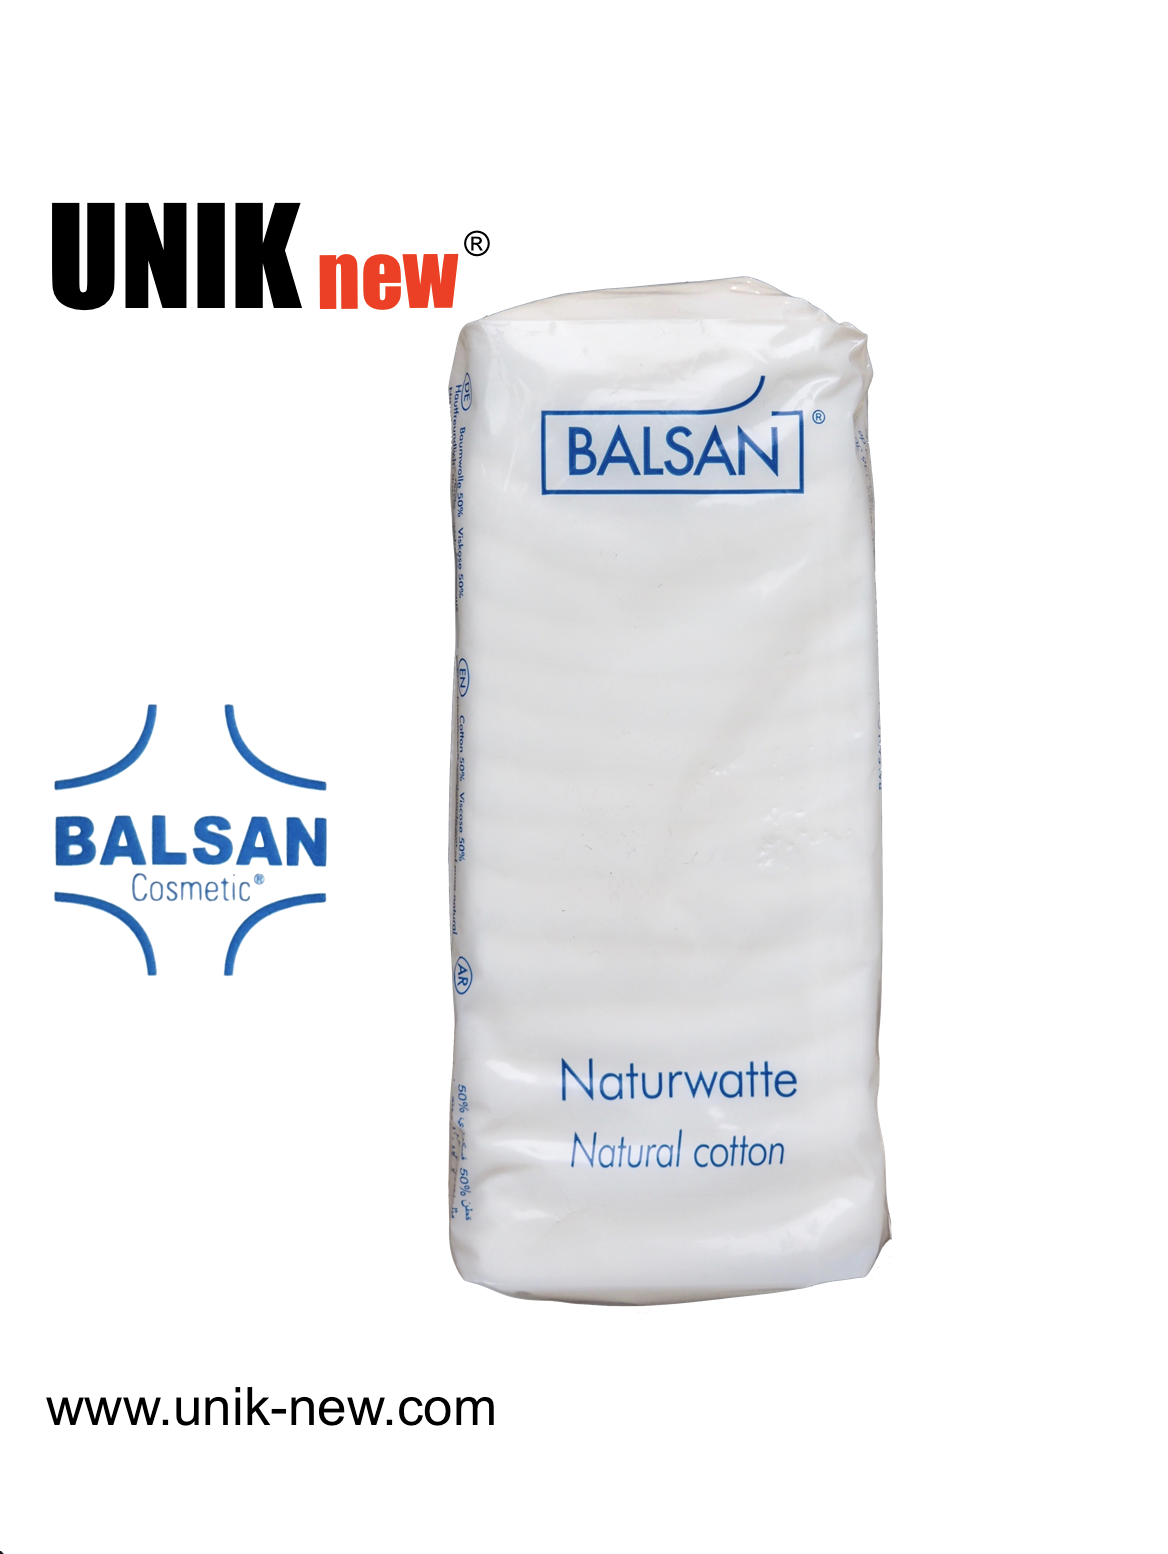 Balsan boutique 2020 coton - copie 2